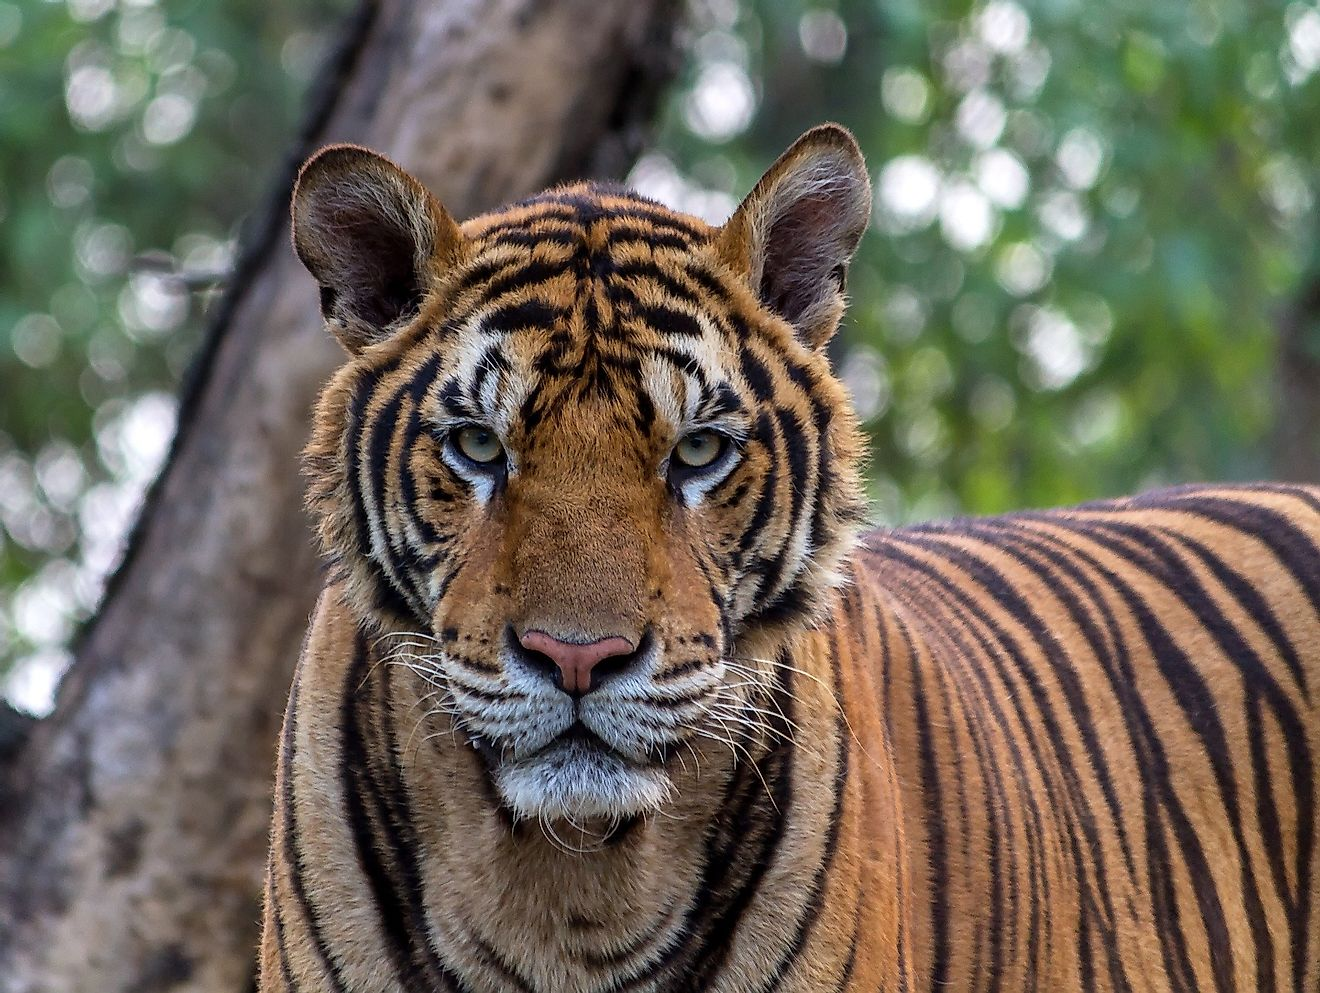 The Bengal tiger is the undisputed ruler of the Indian jungles.